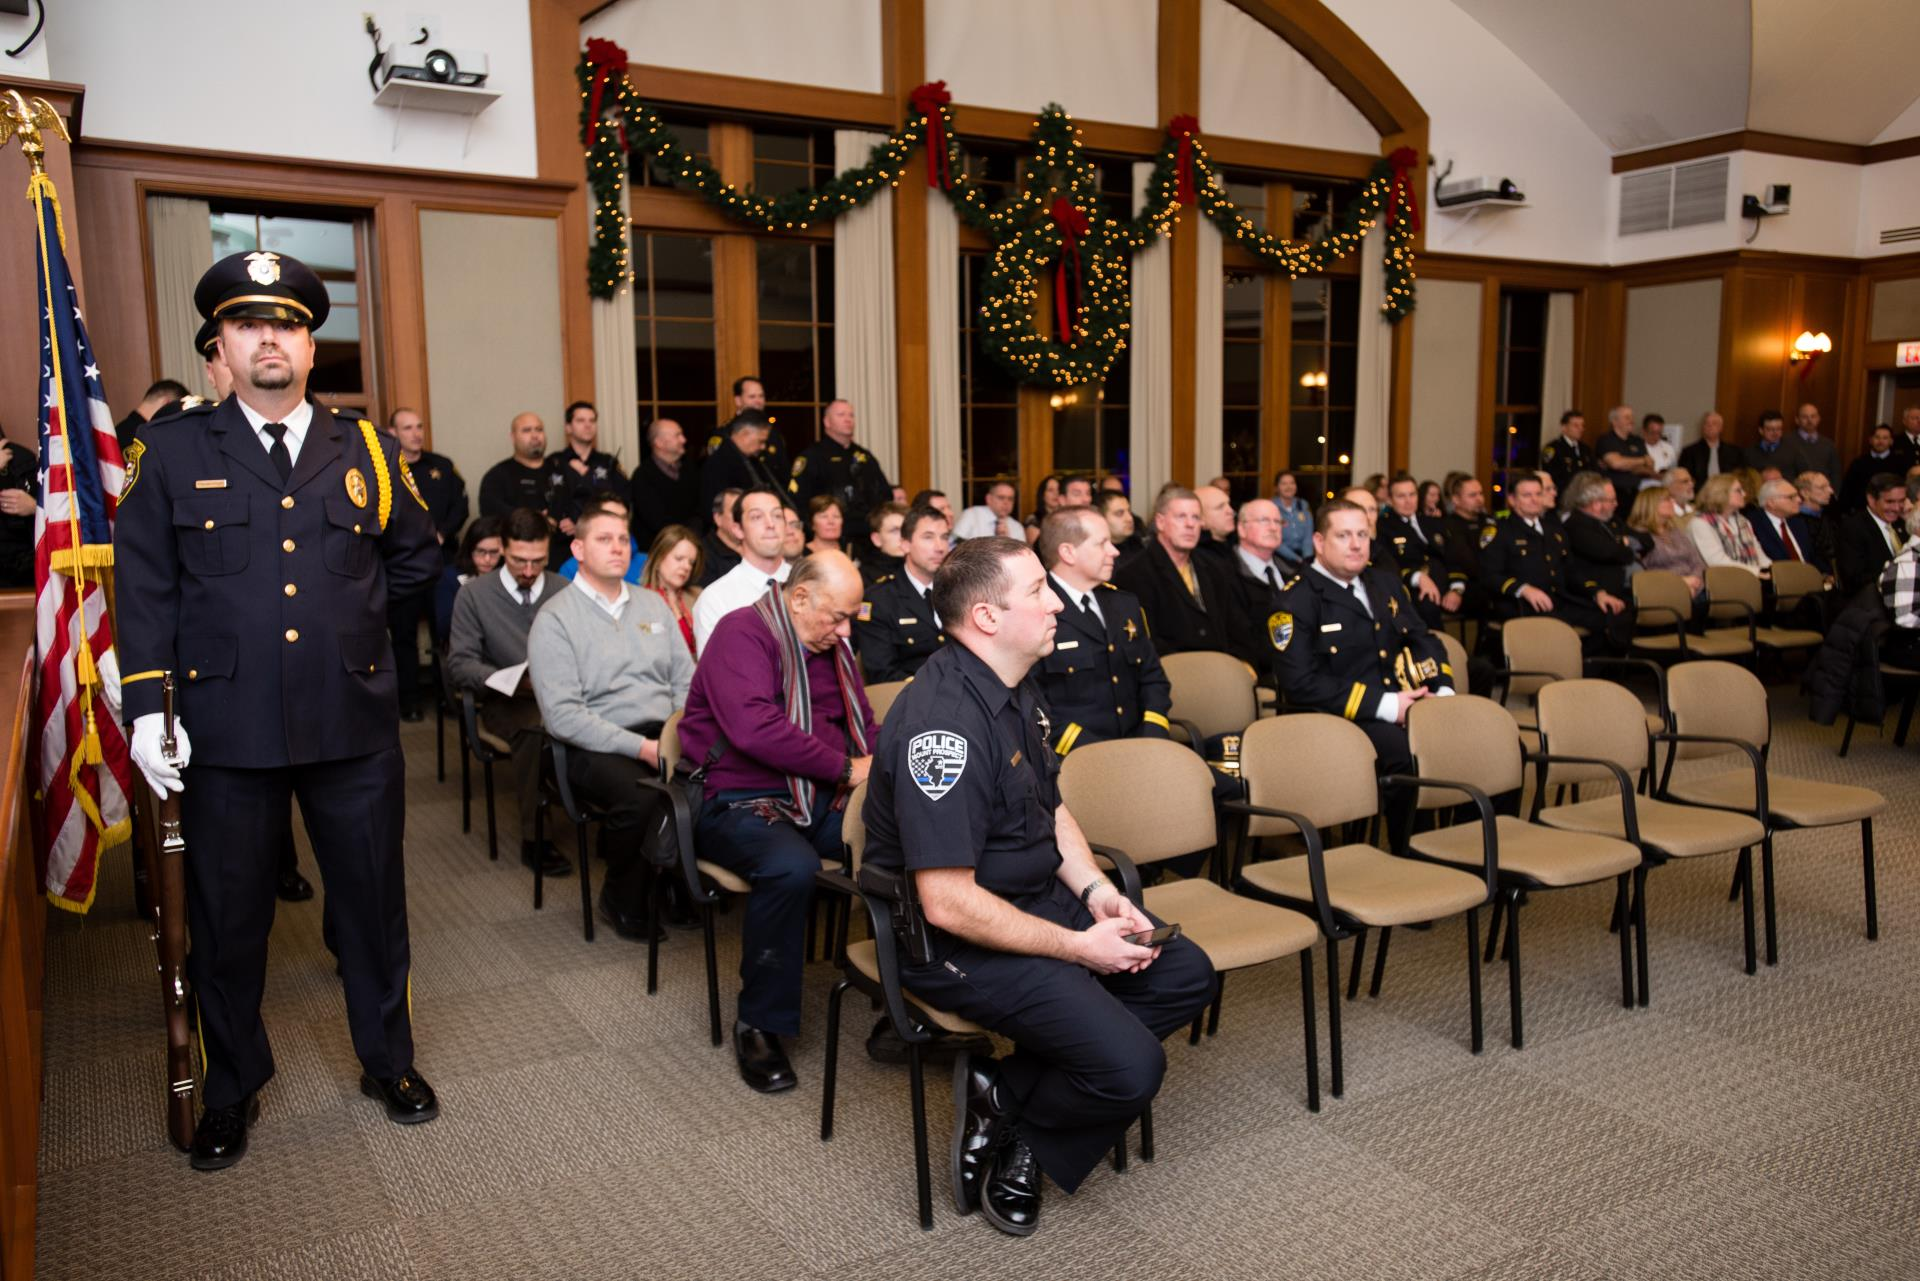 Chief Koziol Swearing-In Ceremony Final-7752